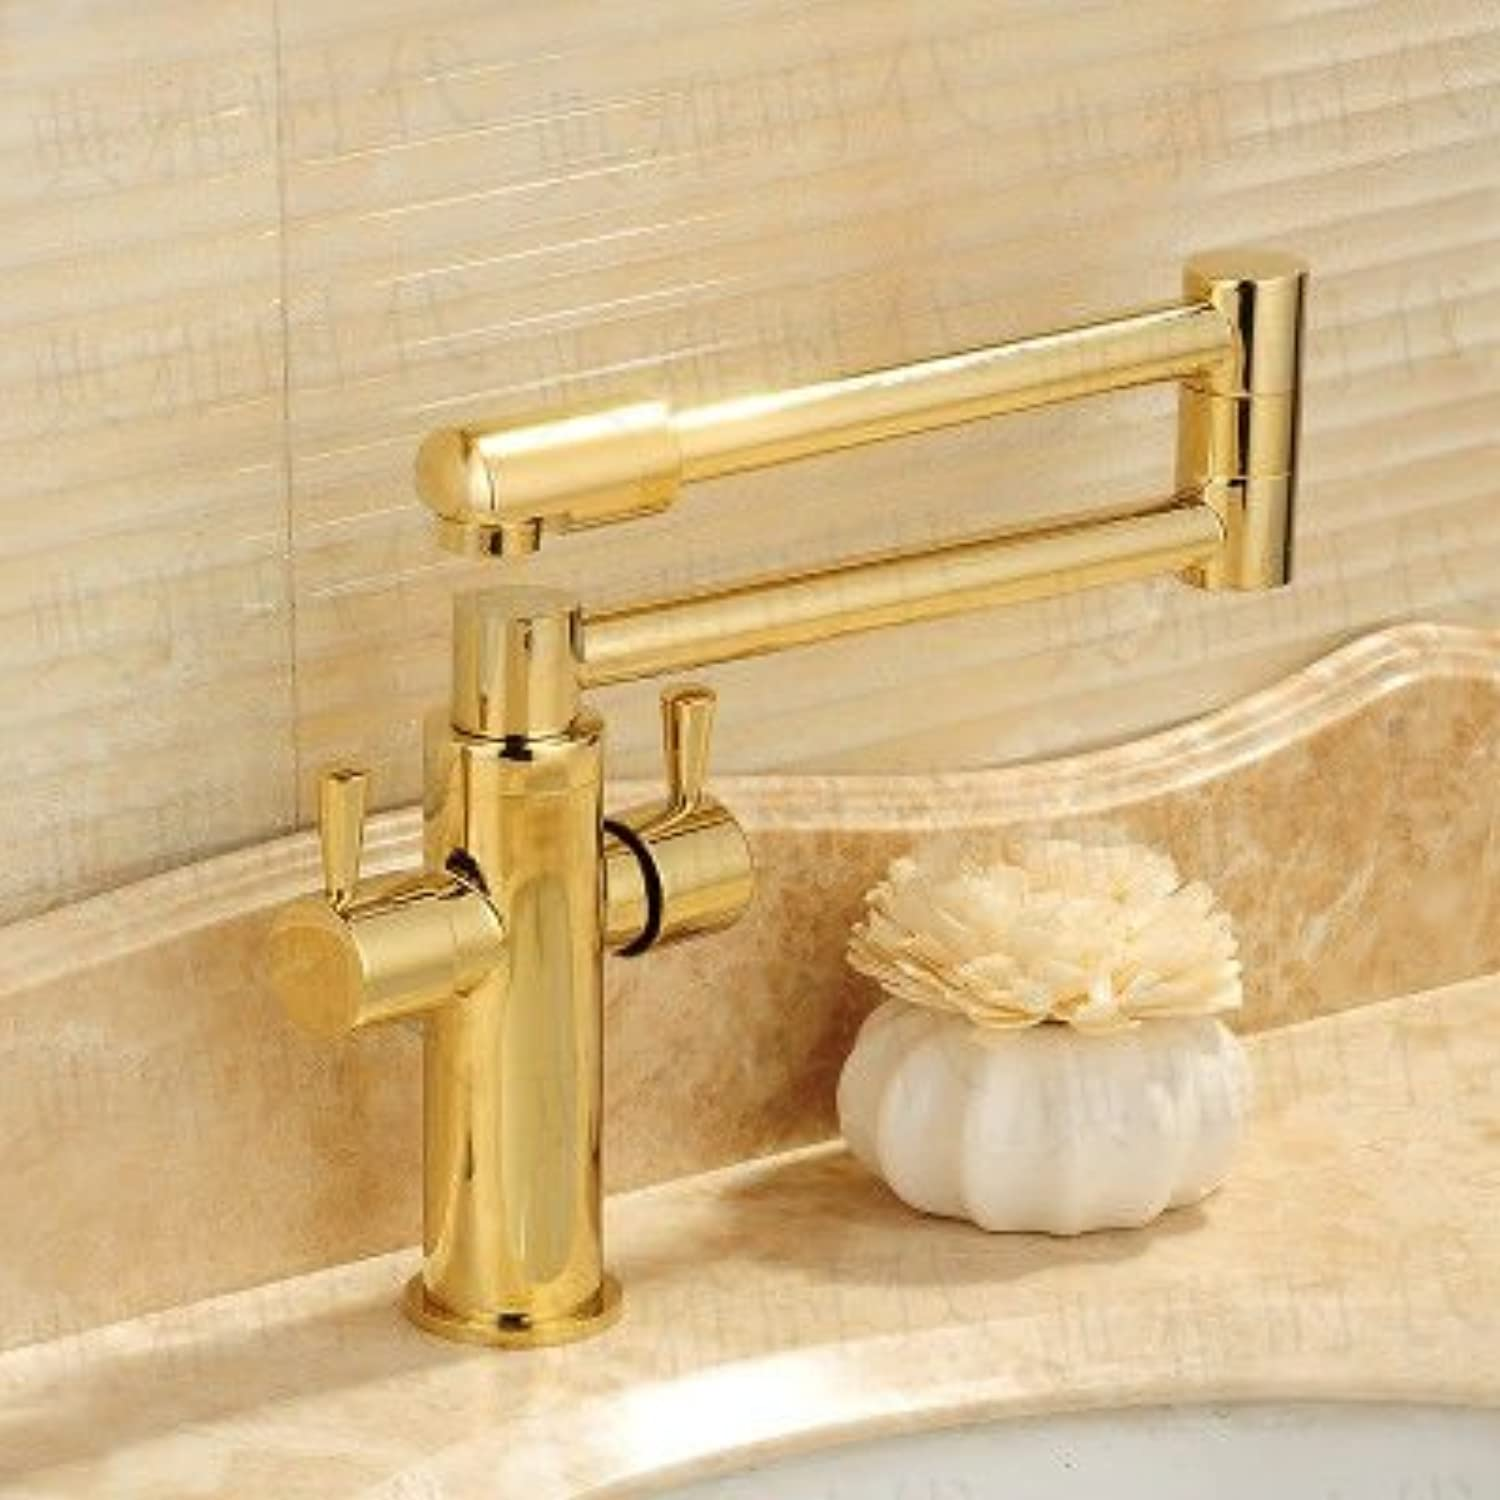 Hlluya Professional Sink Mixer Tap Kitchen Faucet redate the telescopic folding black antique gold-copper hot and cold faucets kitchen sink faucets, B